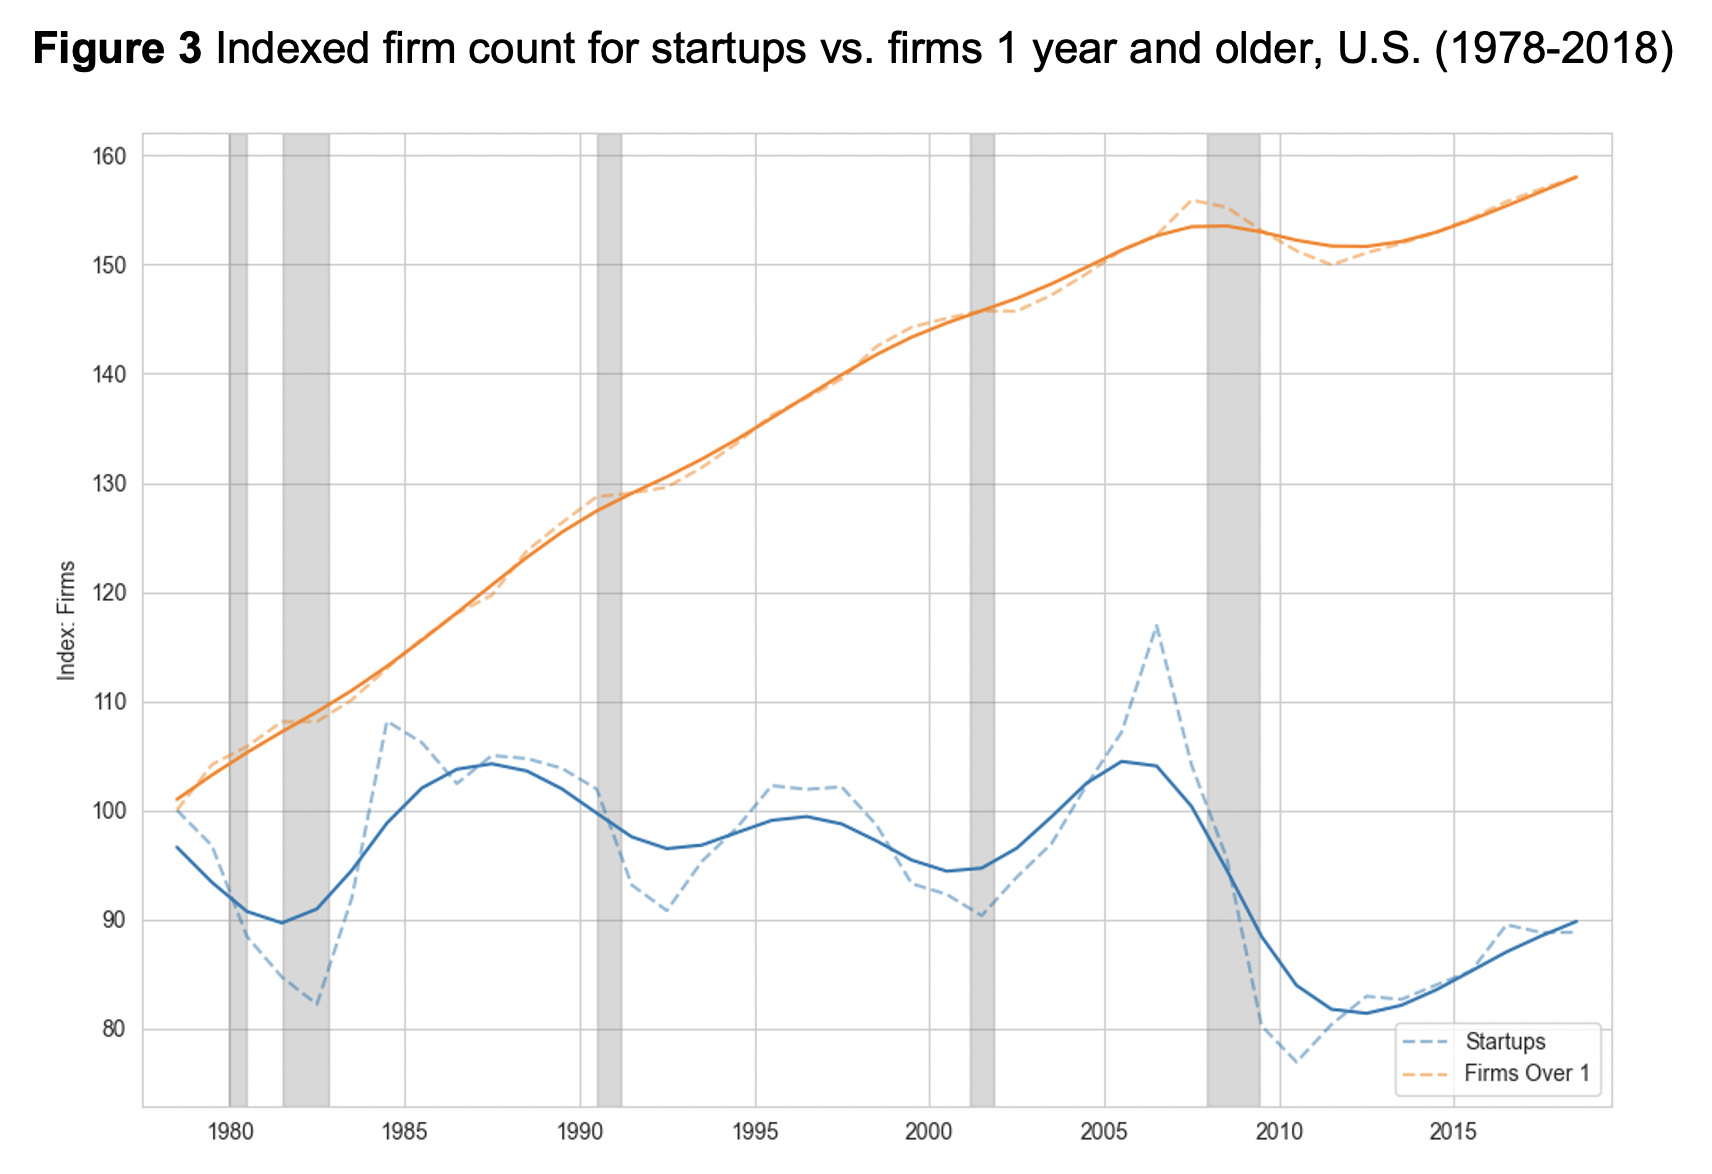 Figure 3: Indexed firm count for startups vs. firms 1 year and older, U.S. (1978-2018)